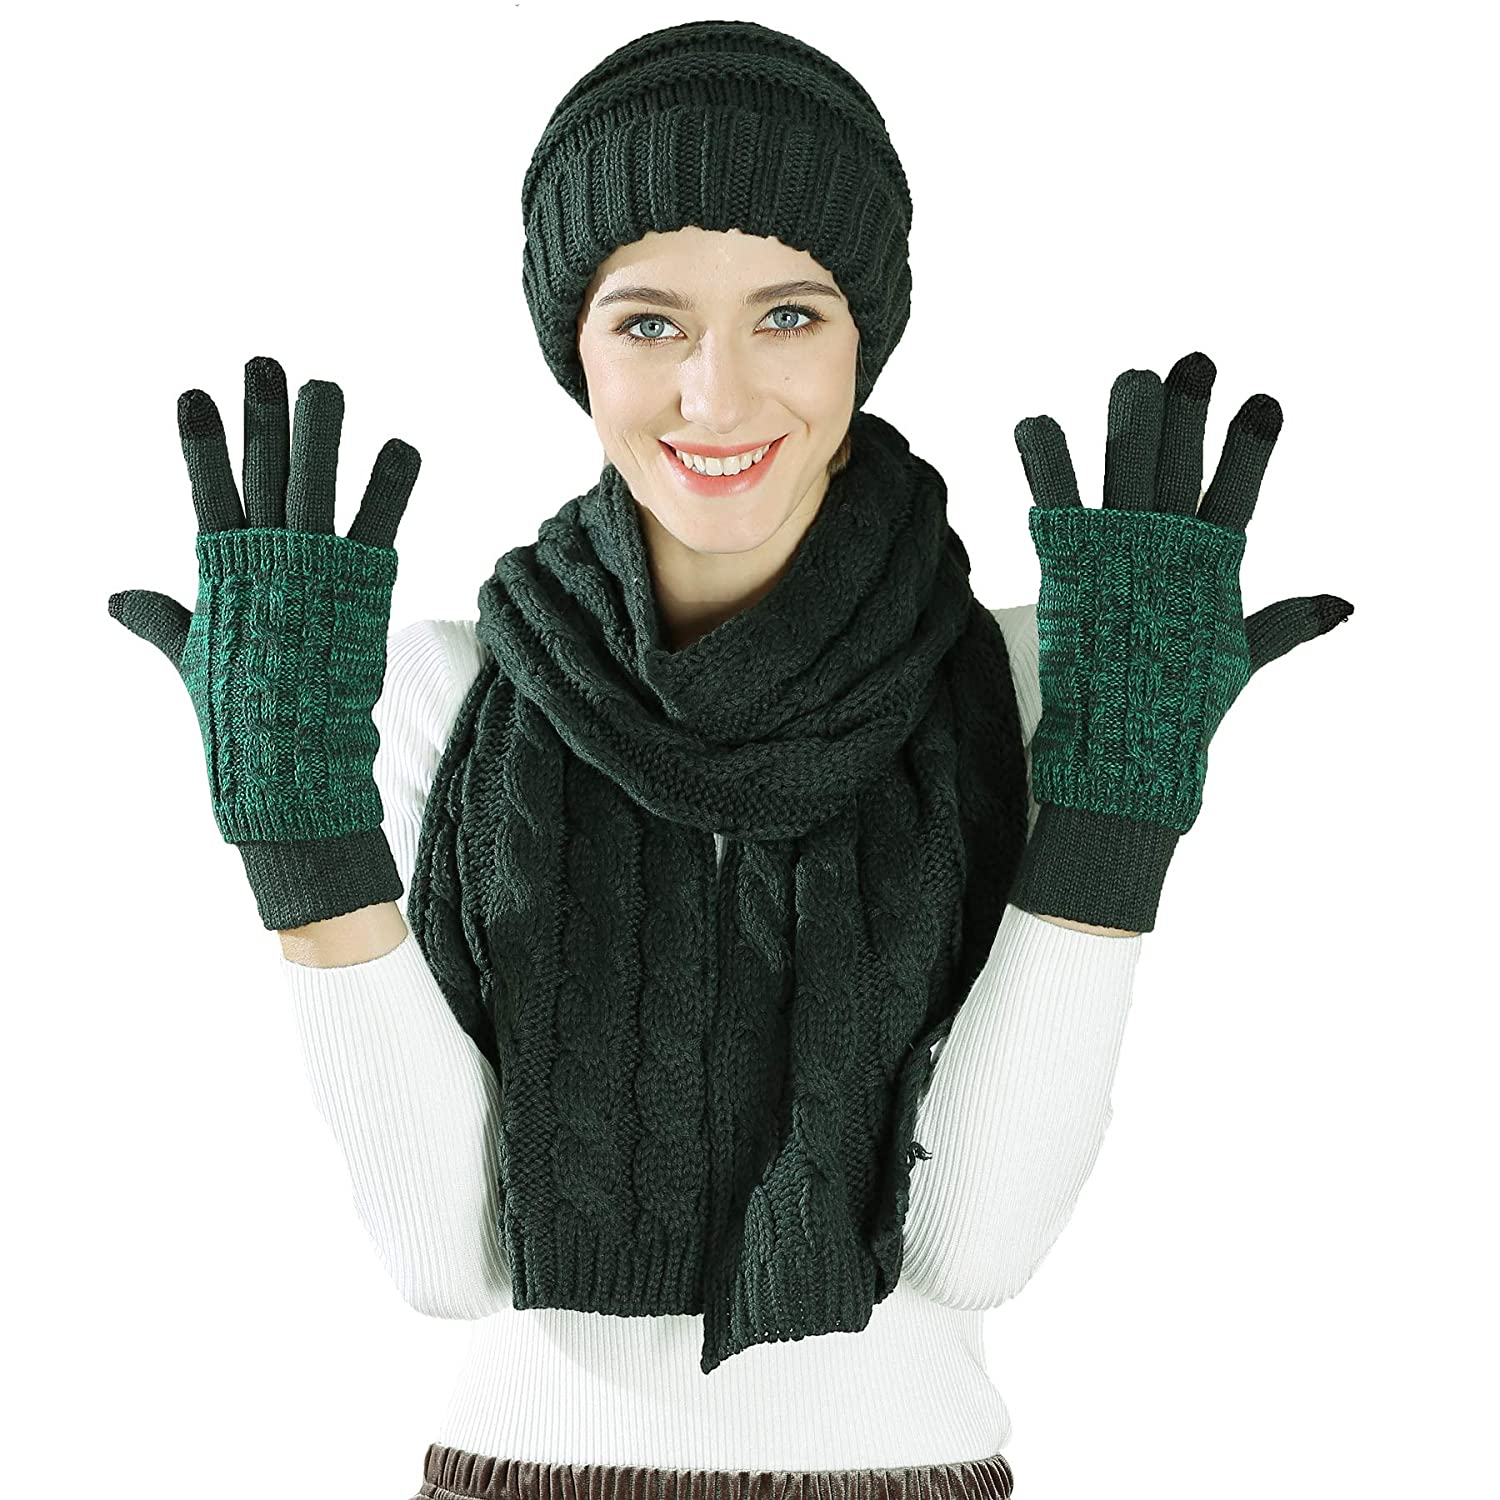 Scarf Hat Glove Set-Soft Stretch Warm Thick Cable Knit Hat Cap Beanie Mitten Scarf Touchscreen Gloves Fashion 3 in 1 Winter Cold Gift Set